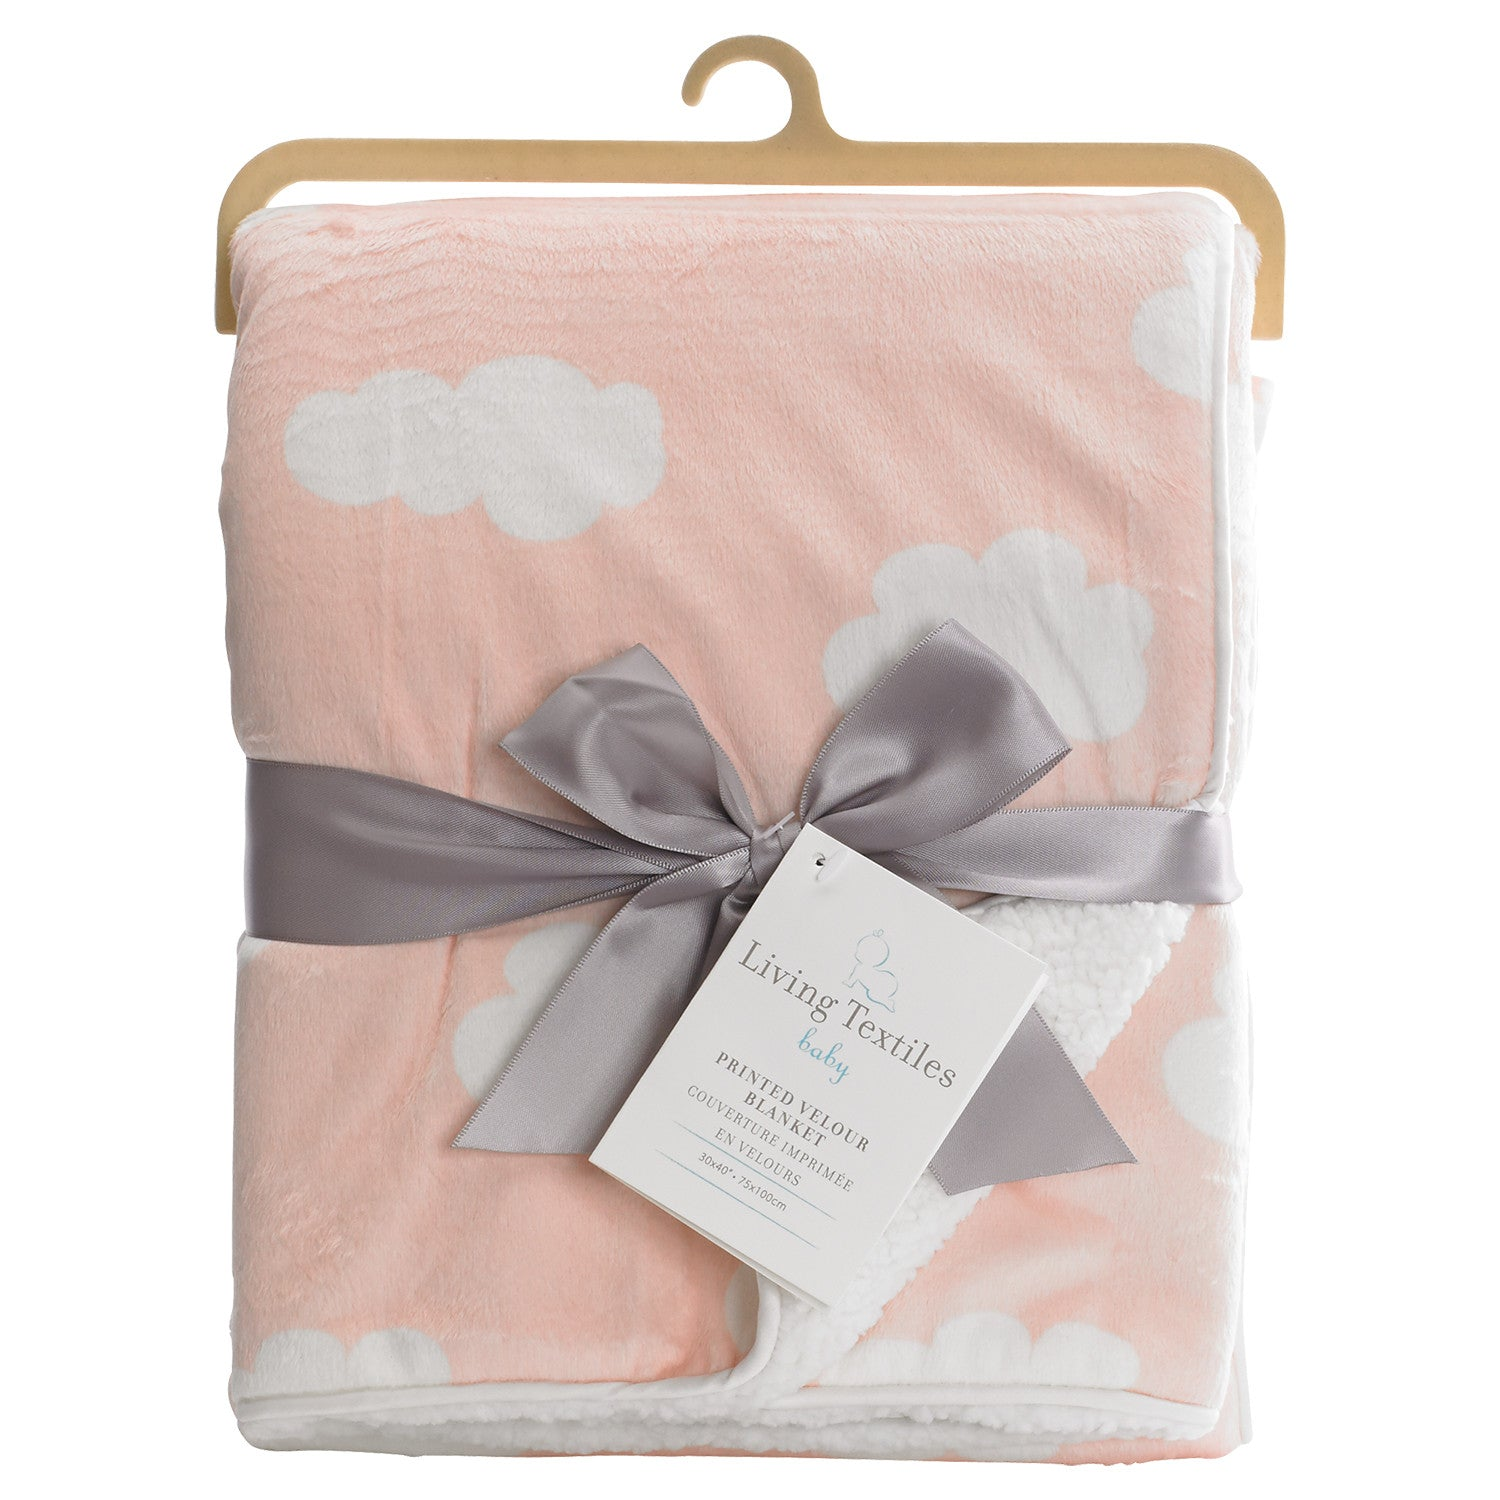 Printed Velour Blanket - Pink Cloud - Living Textiles Co.